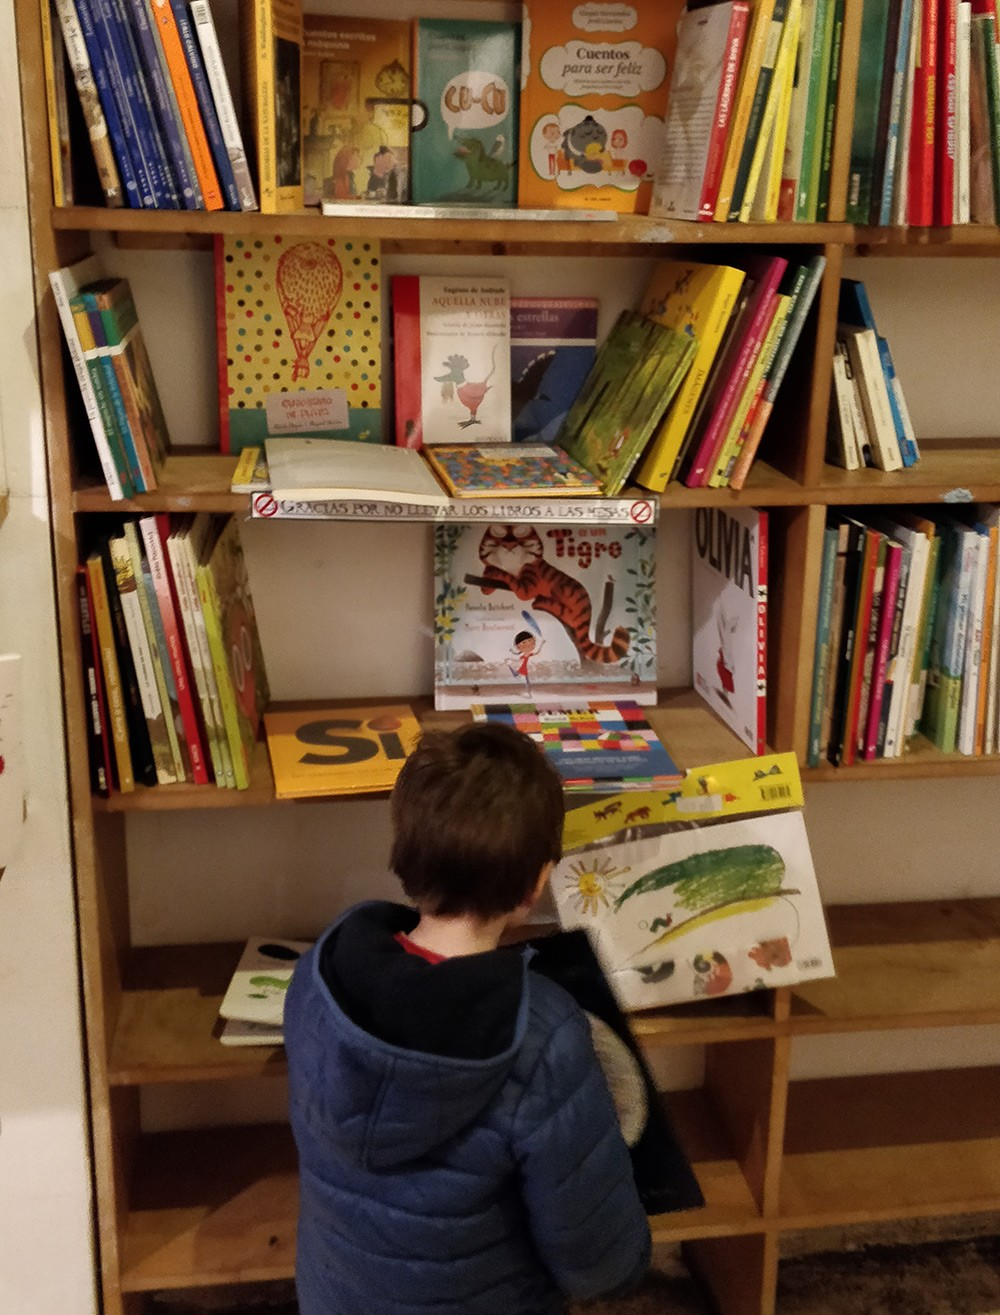 What to do in Valencia with kids: visit Ubik cafe & library